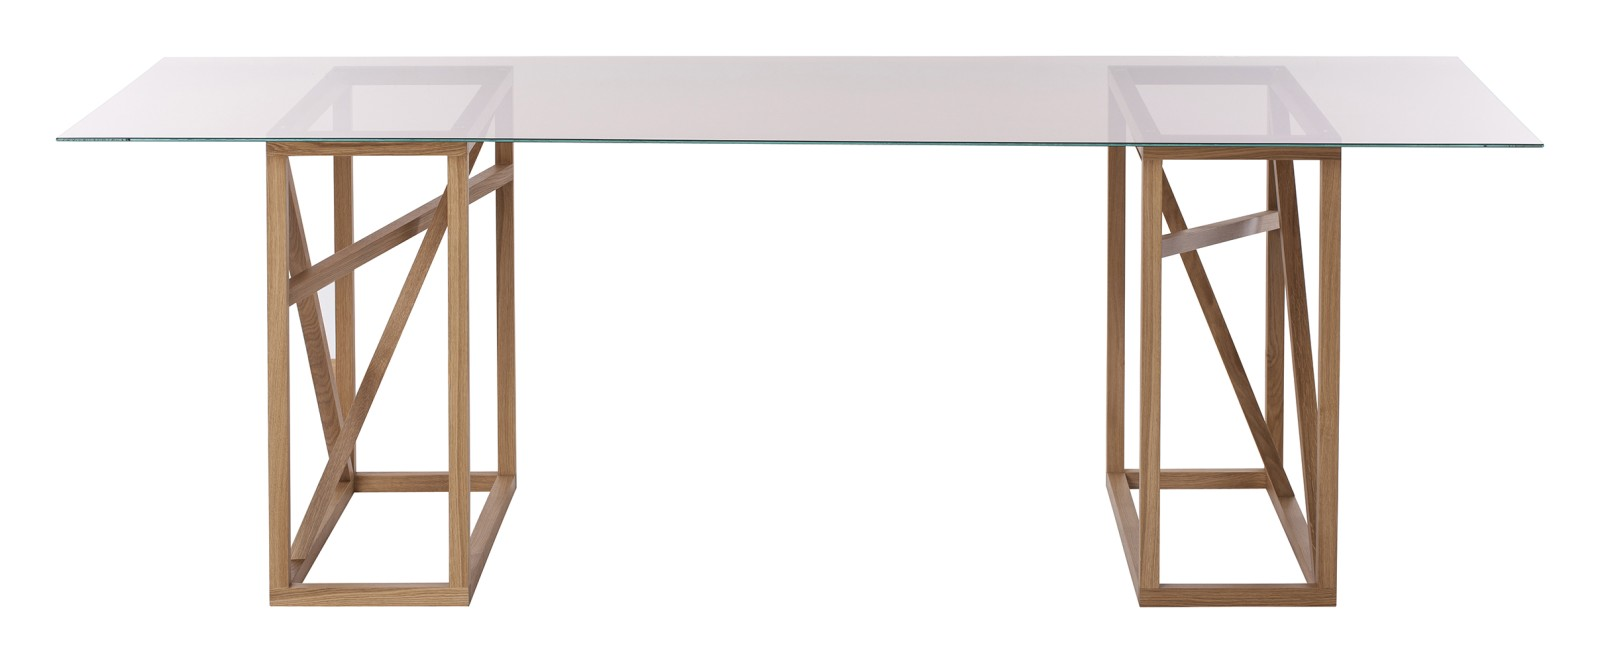 1x1 Trestle - Dining Table Amber Glass Top